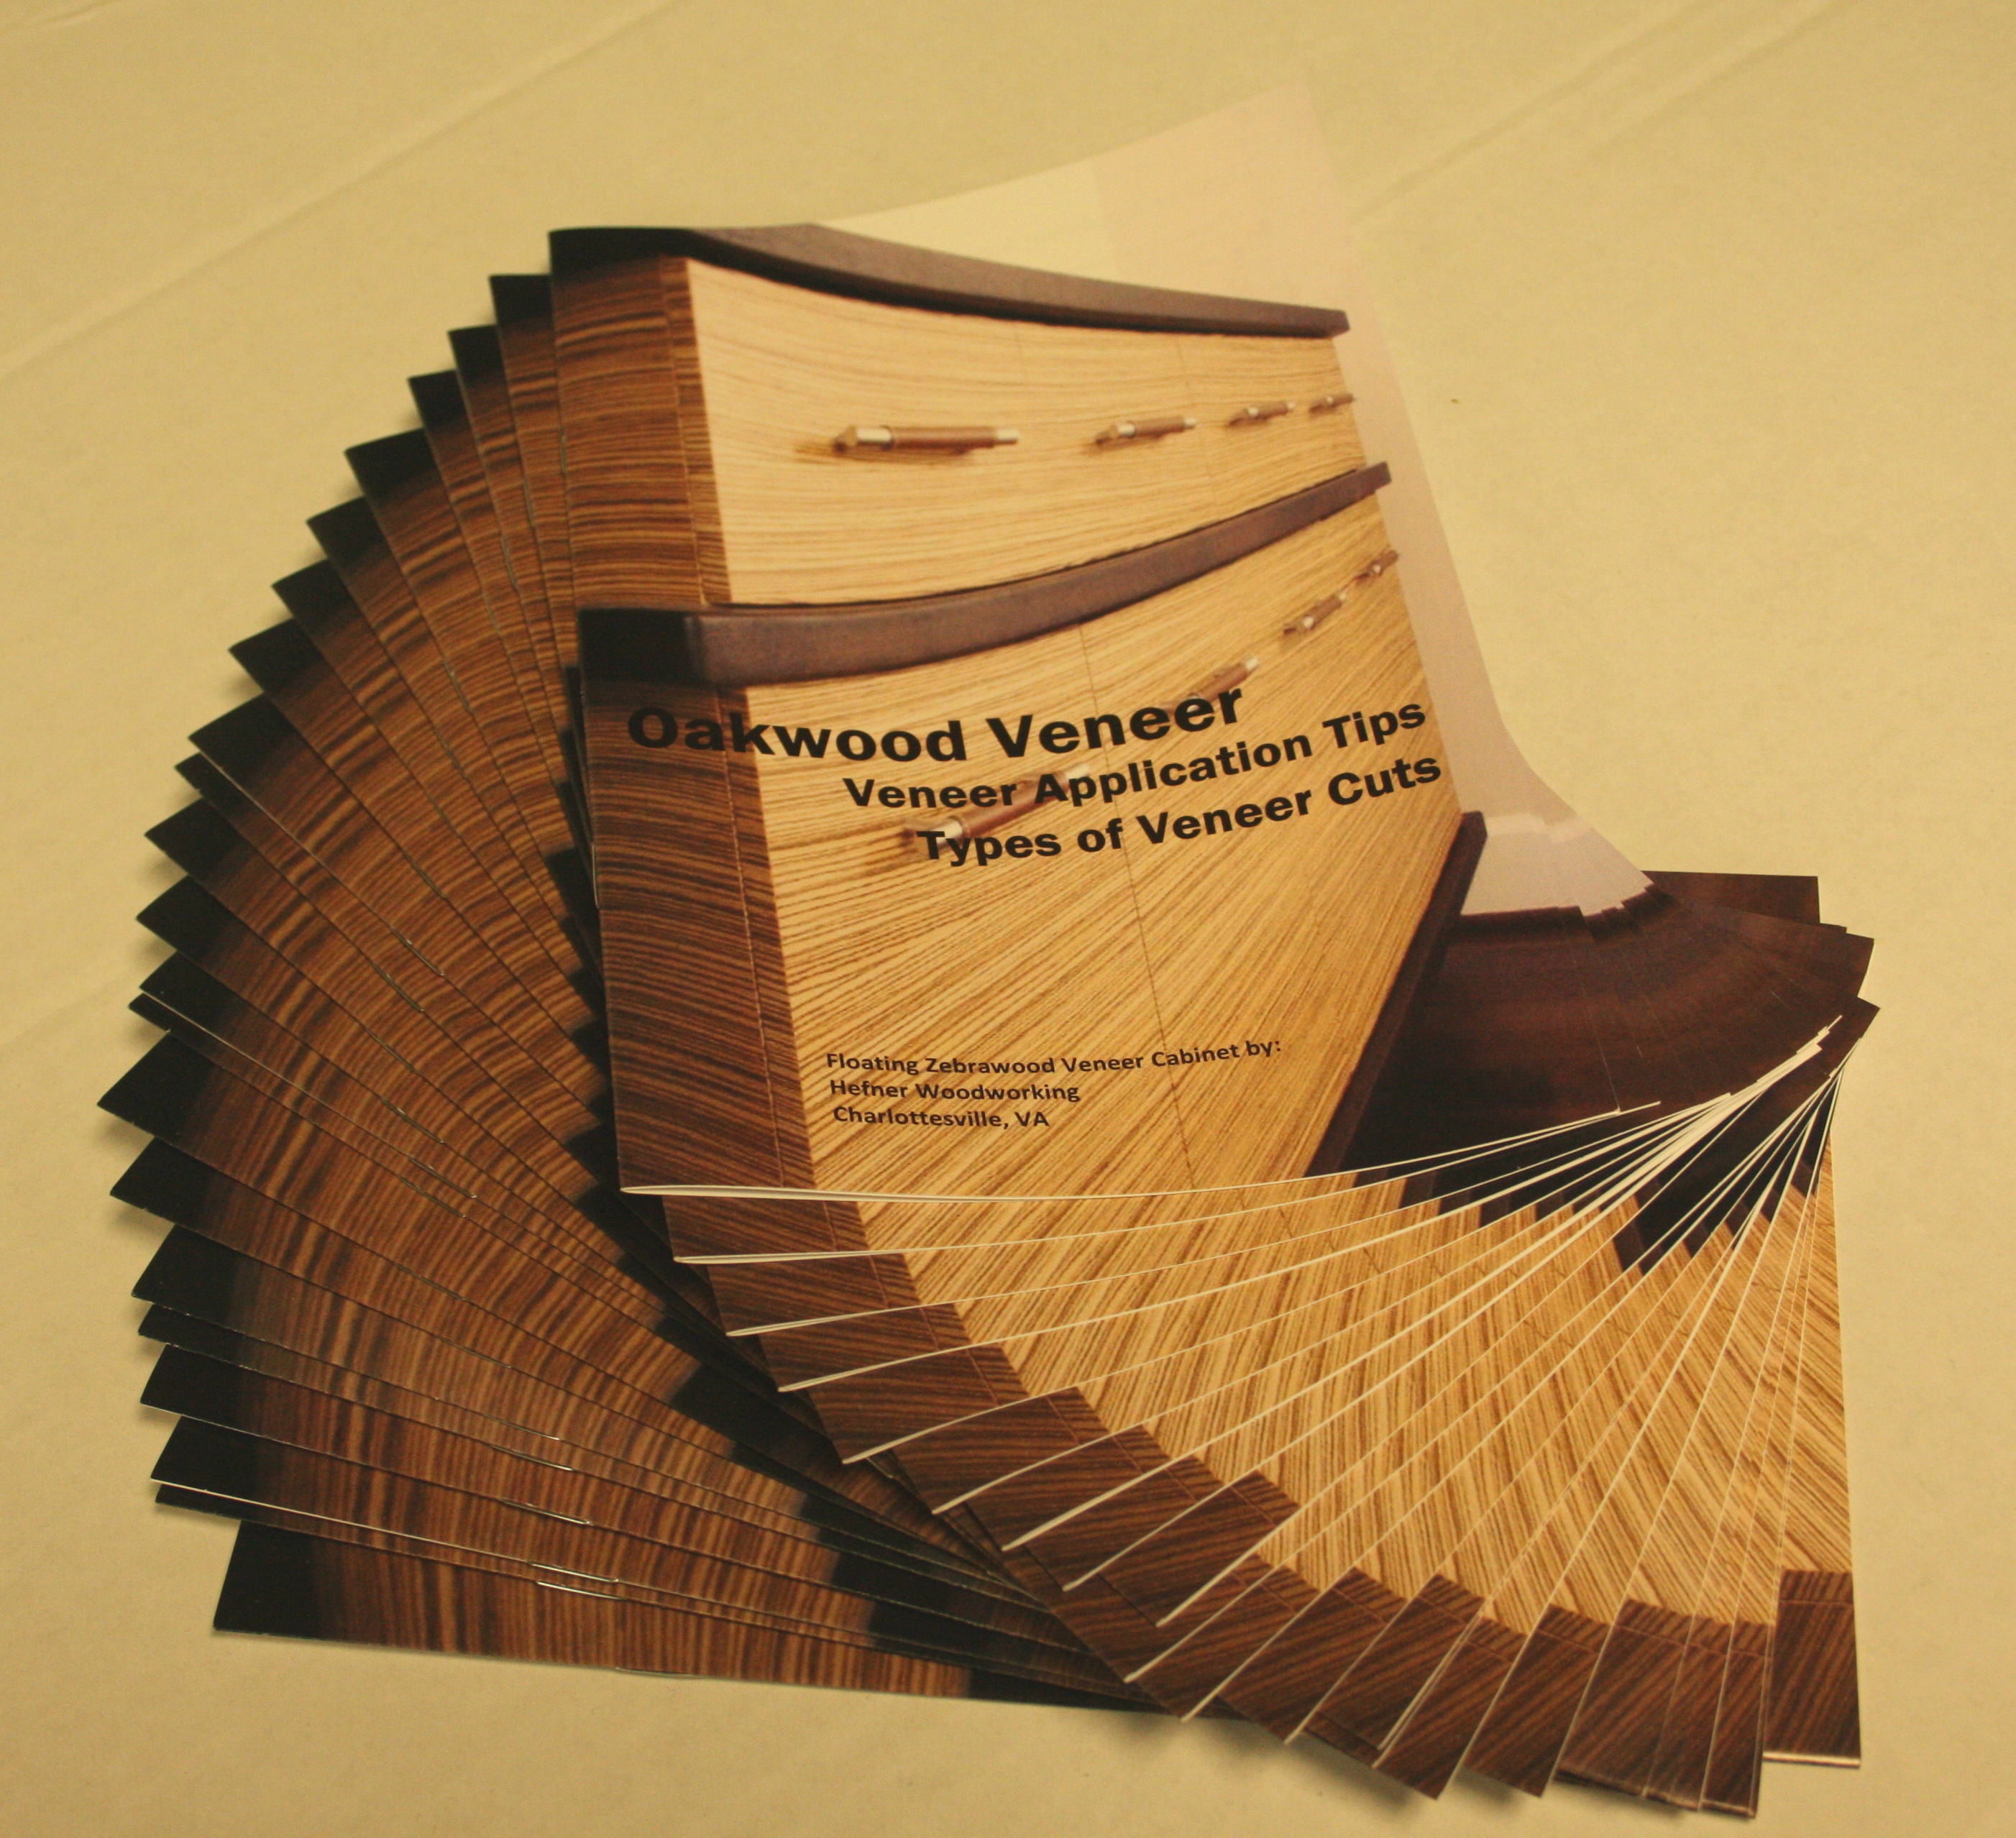 Oakwood veneer offering free veneer installation tips for Oakwood veneers